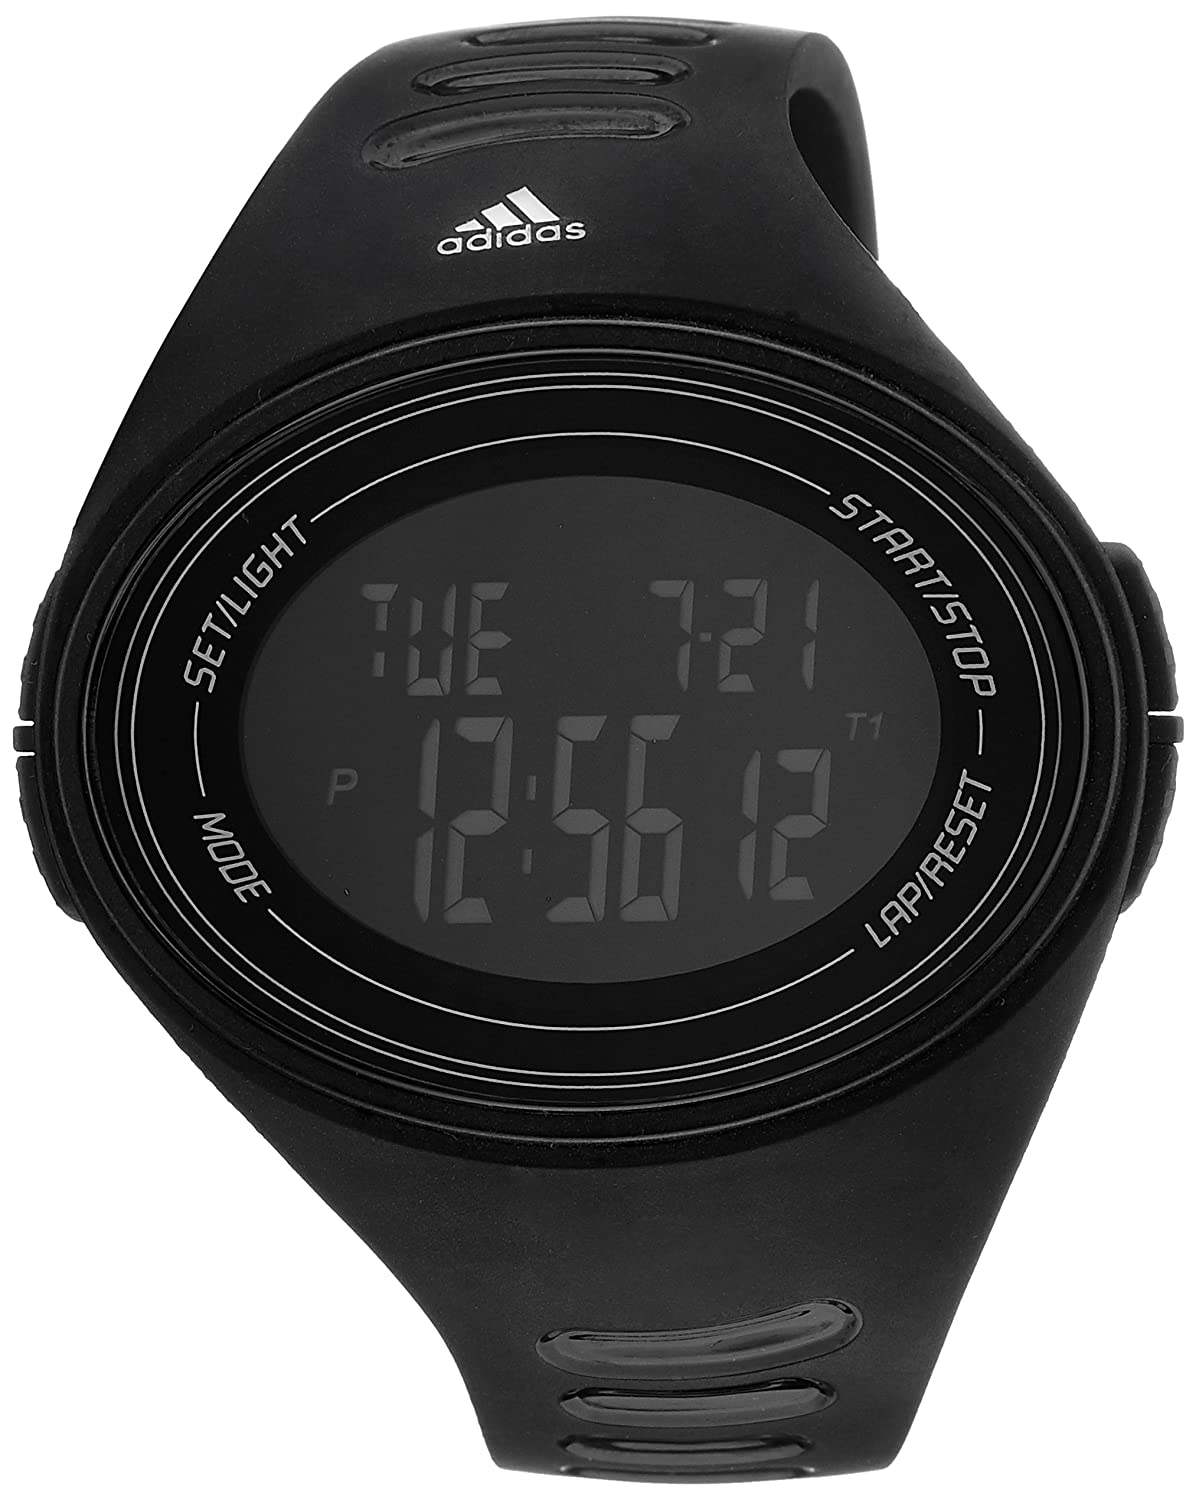 Amazon.com: adidas Unisex ADP6106 AdiZero Digital Watch with Polyurethane Band: Adidas: Watches